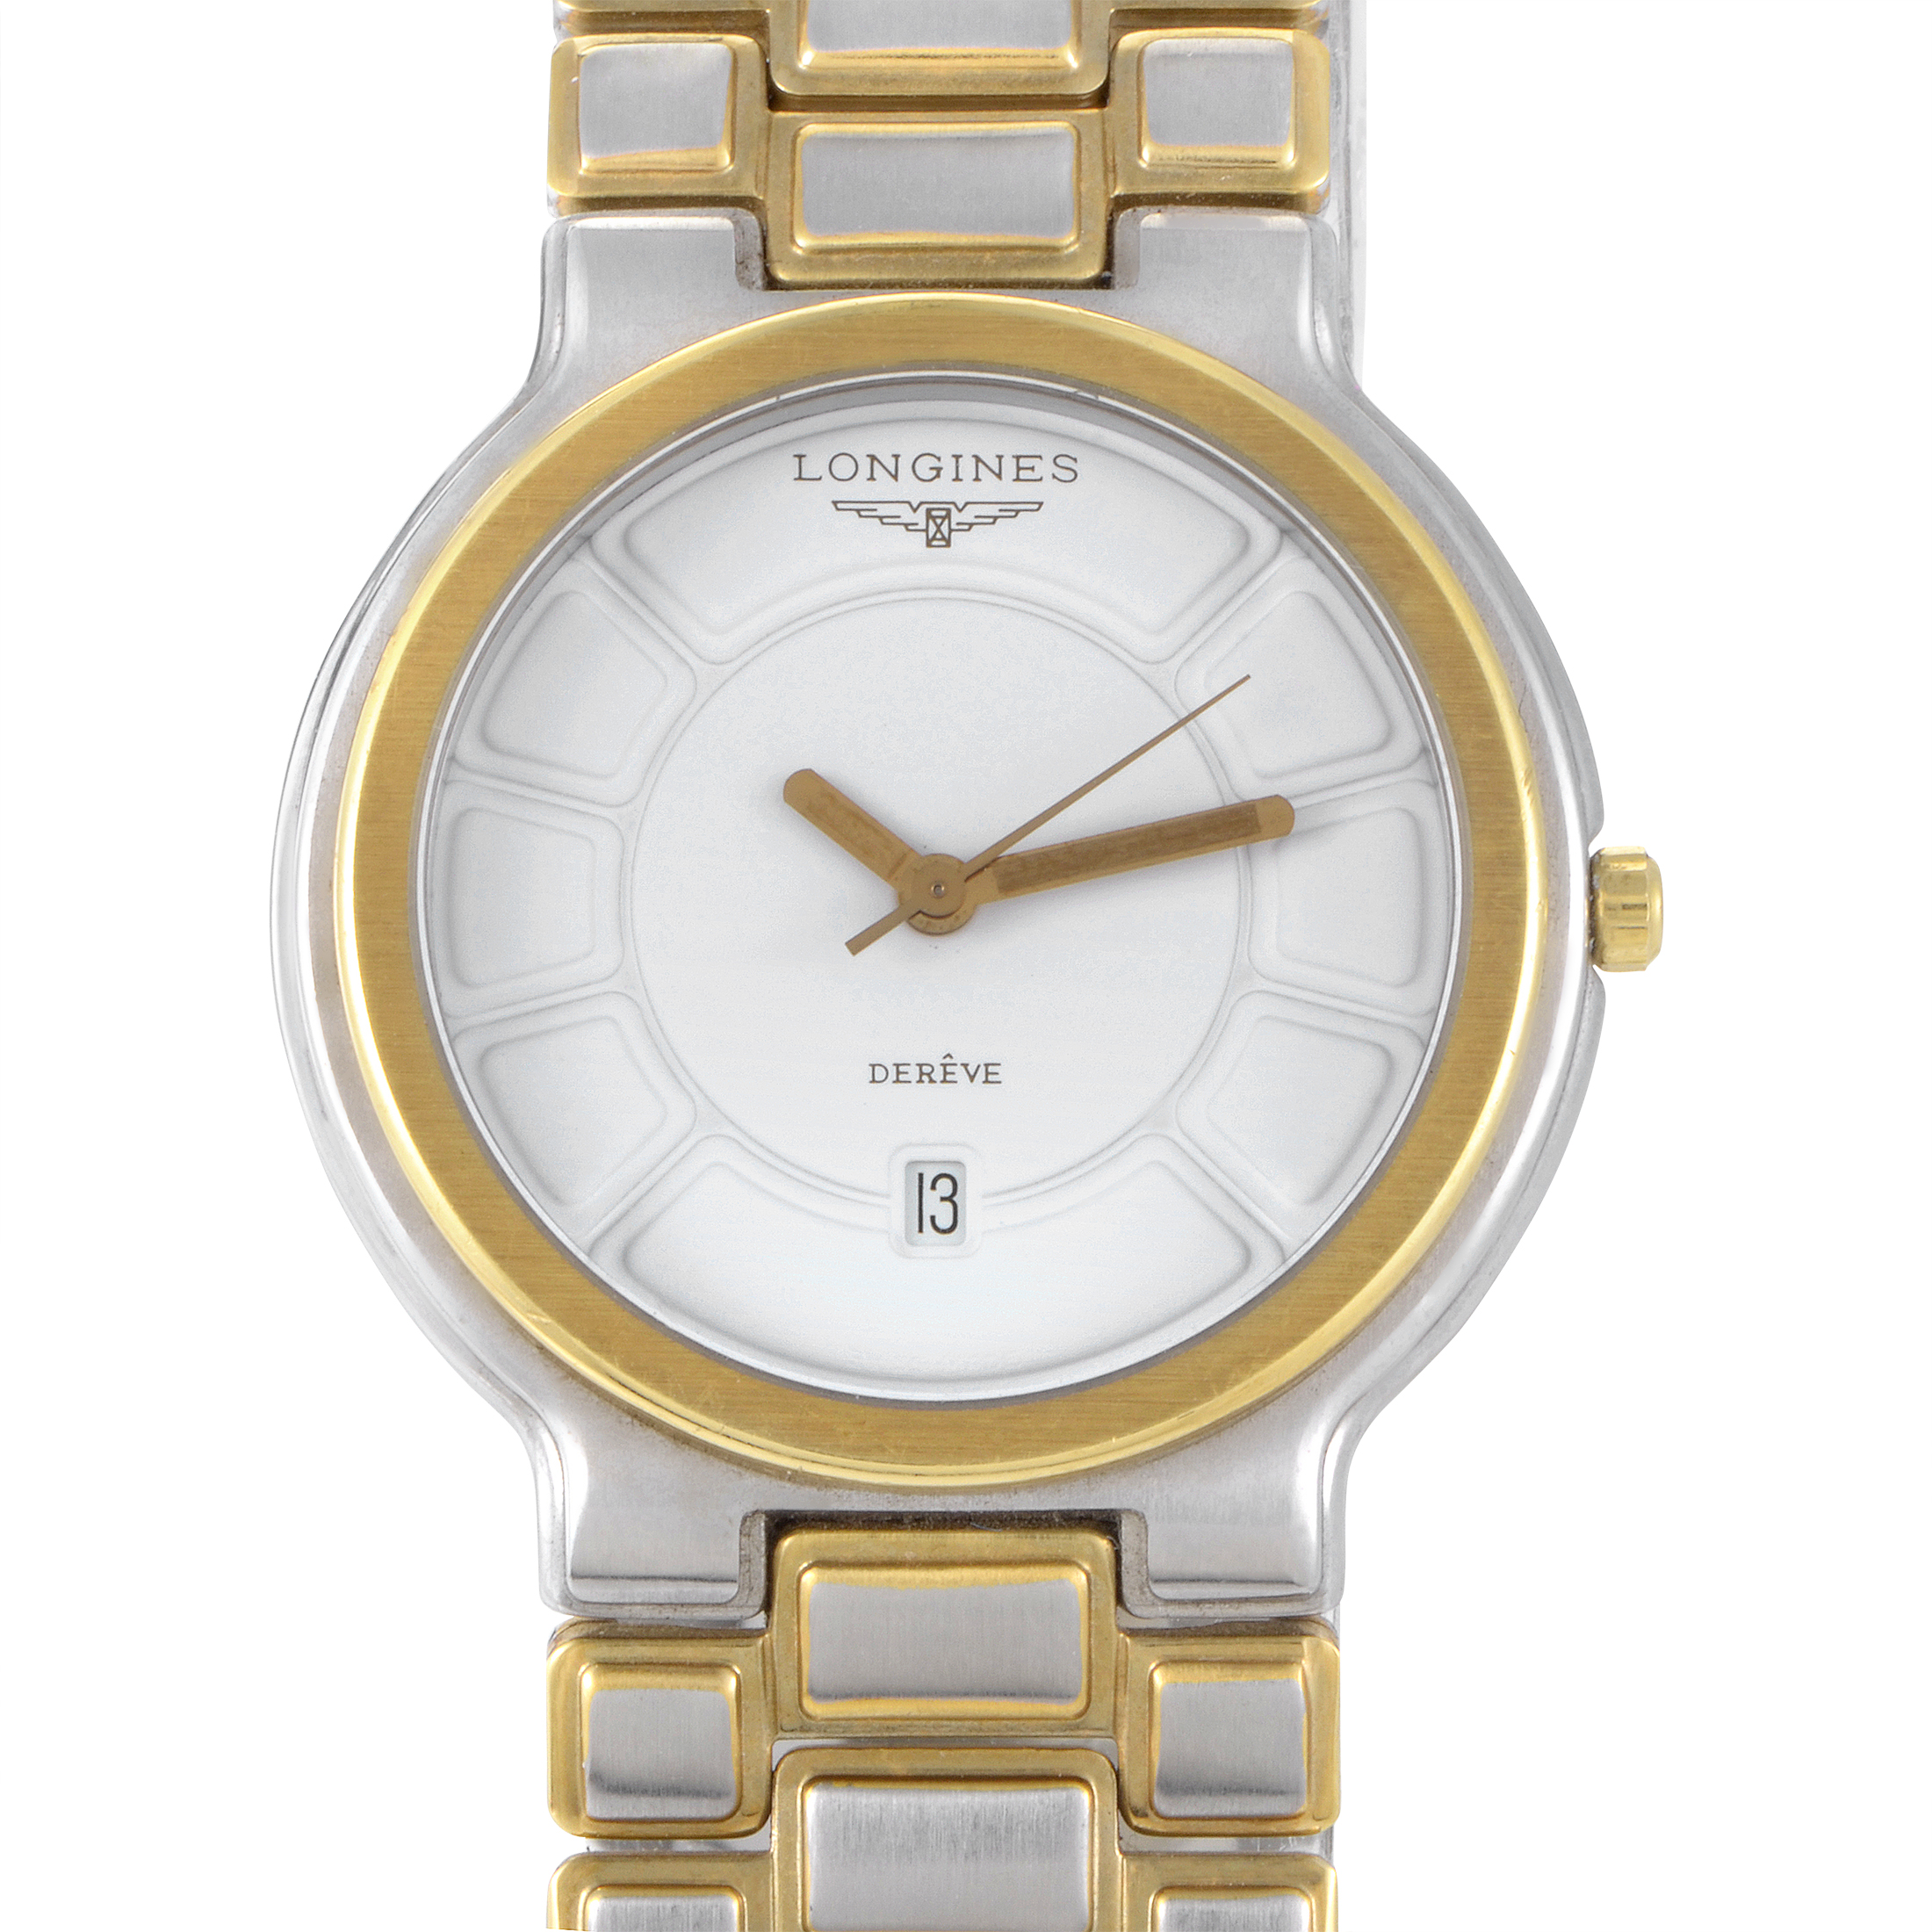 Derêve Women's Gold Plated Stainless Steel Watch L4.693.7.90.6